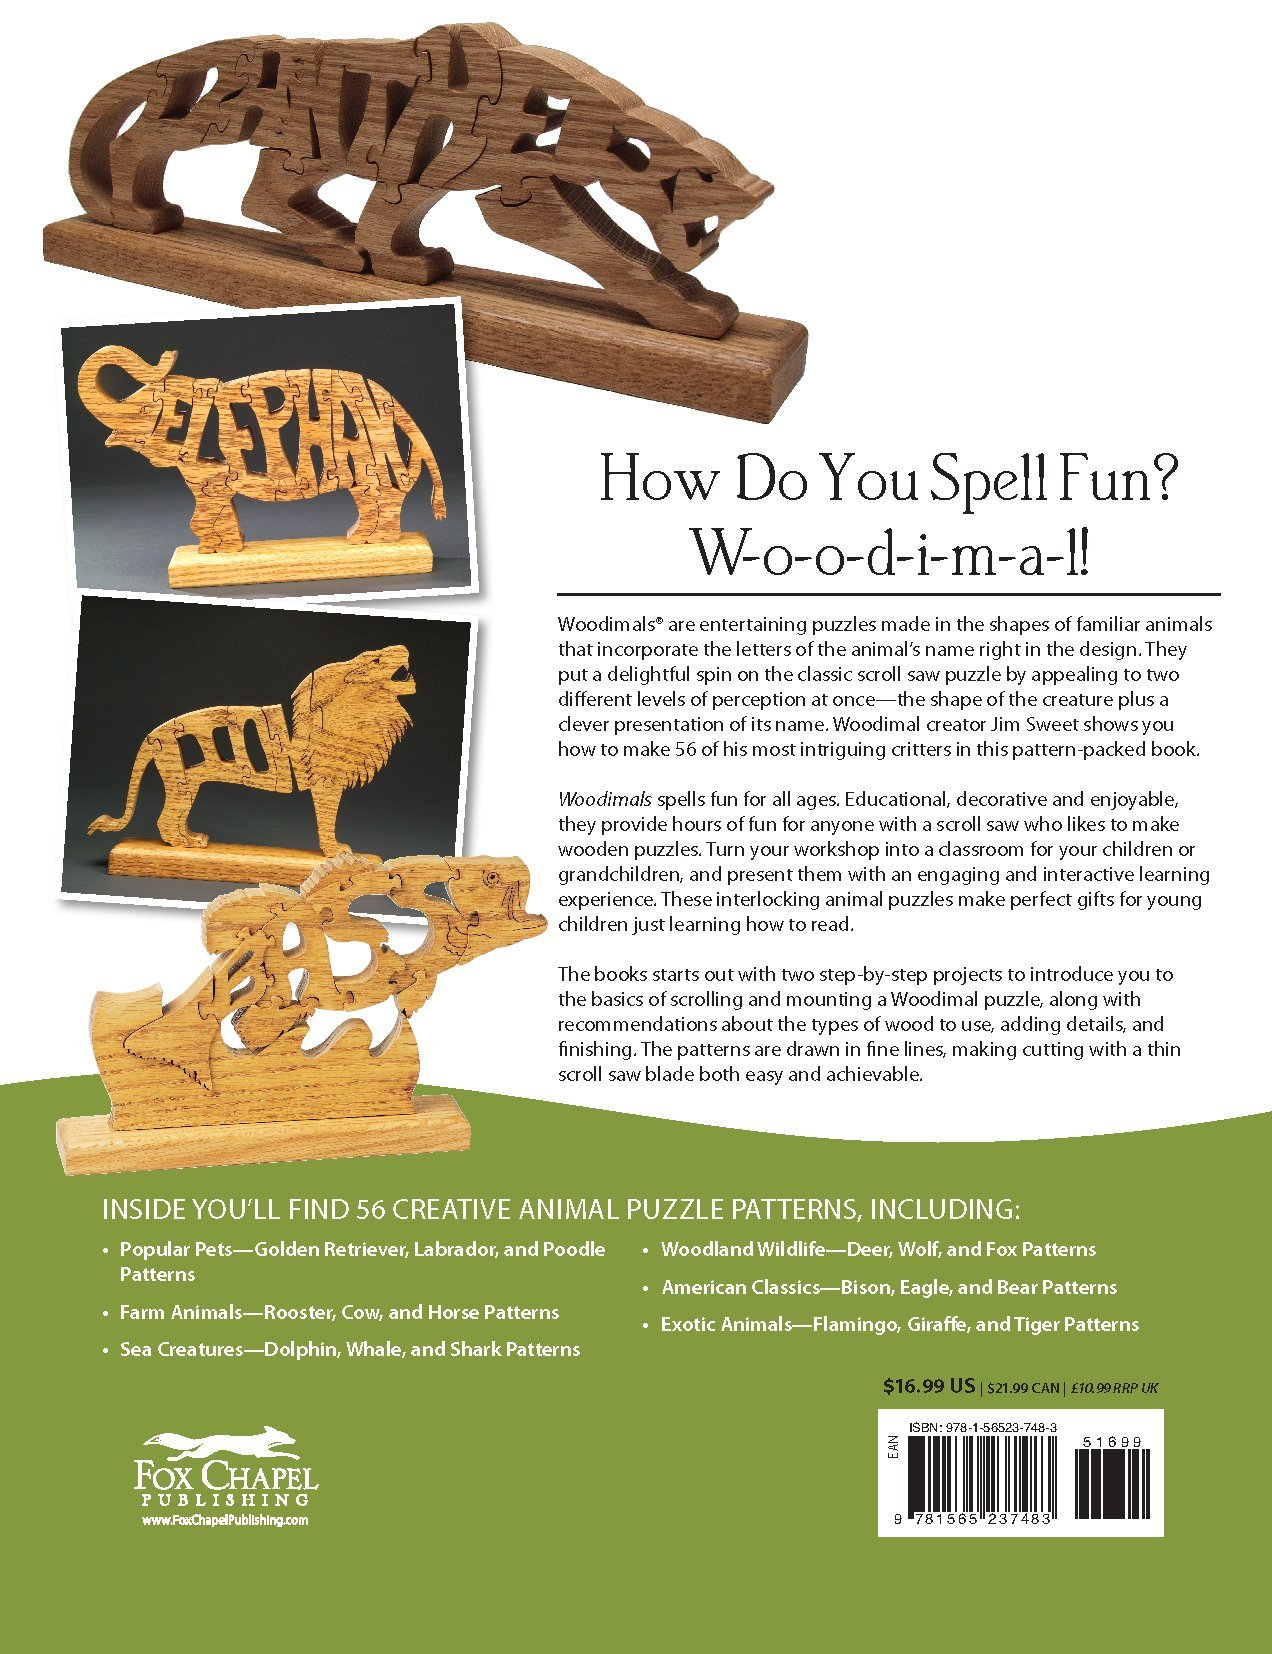 Woodimals creative animal puzzles for the scroll saw fox chapel woodimals creative animal puzzles for the scroll saw fox chapel publishing 56 fun patterns in the shape of animals with the animals name inside the fandeluxe Images